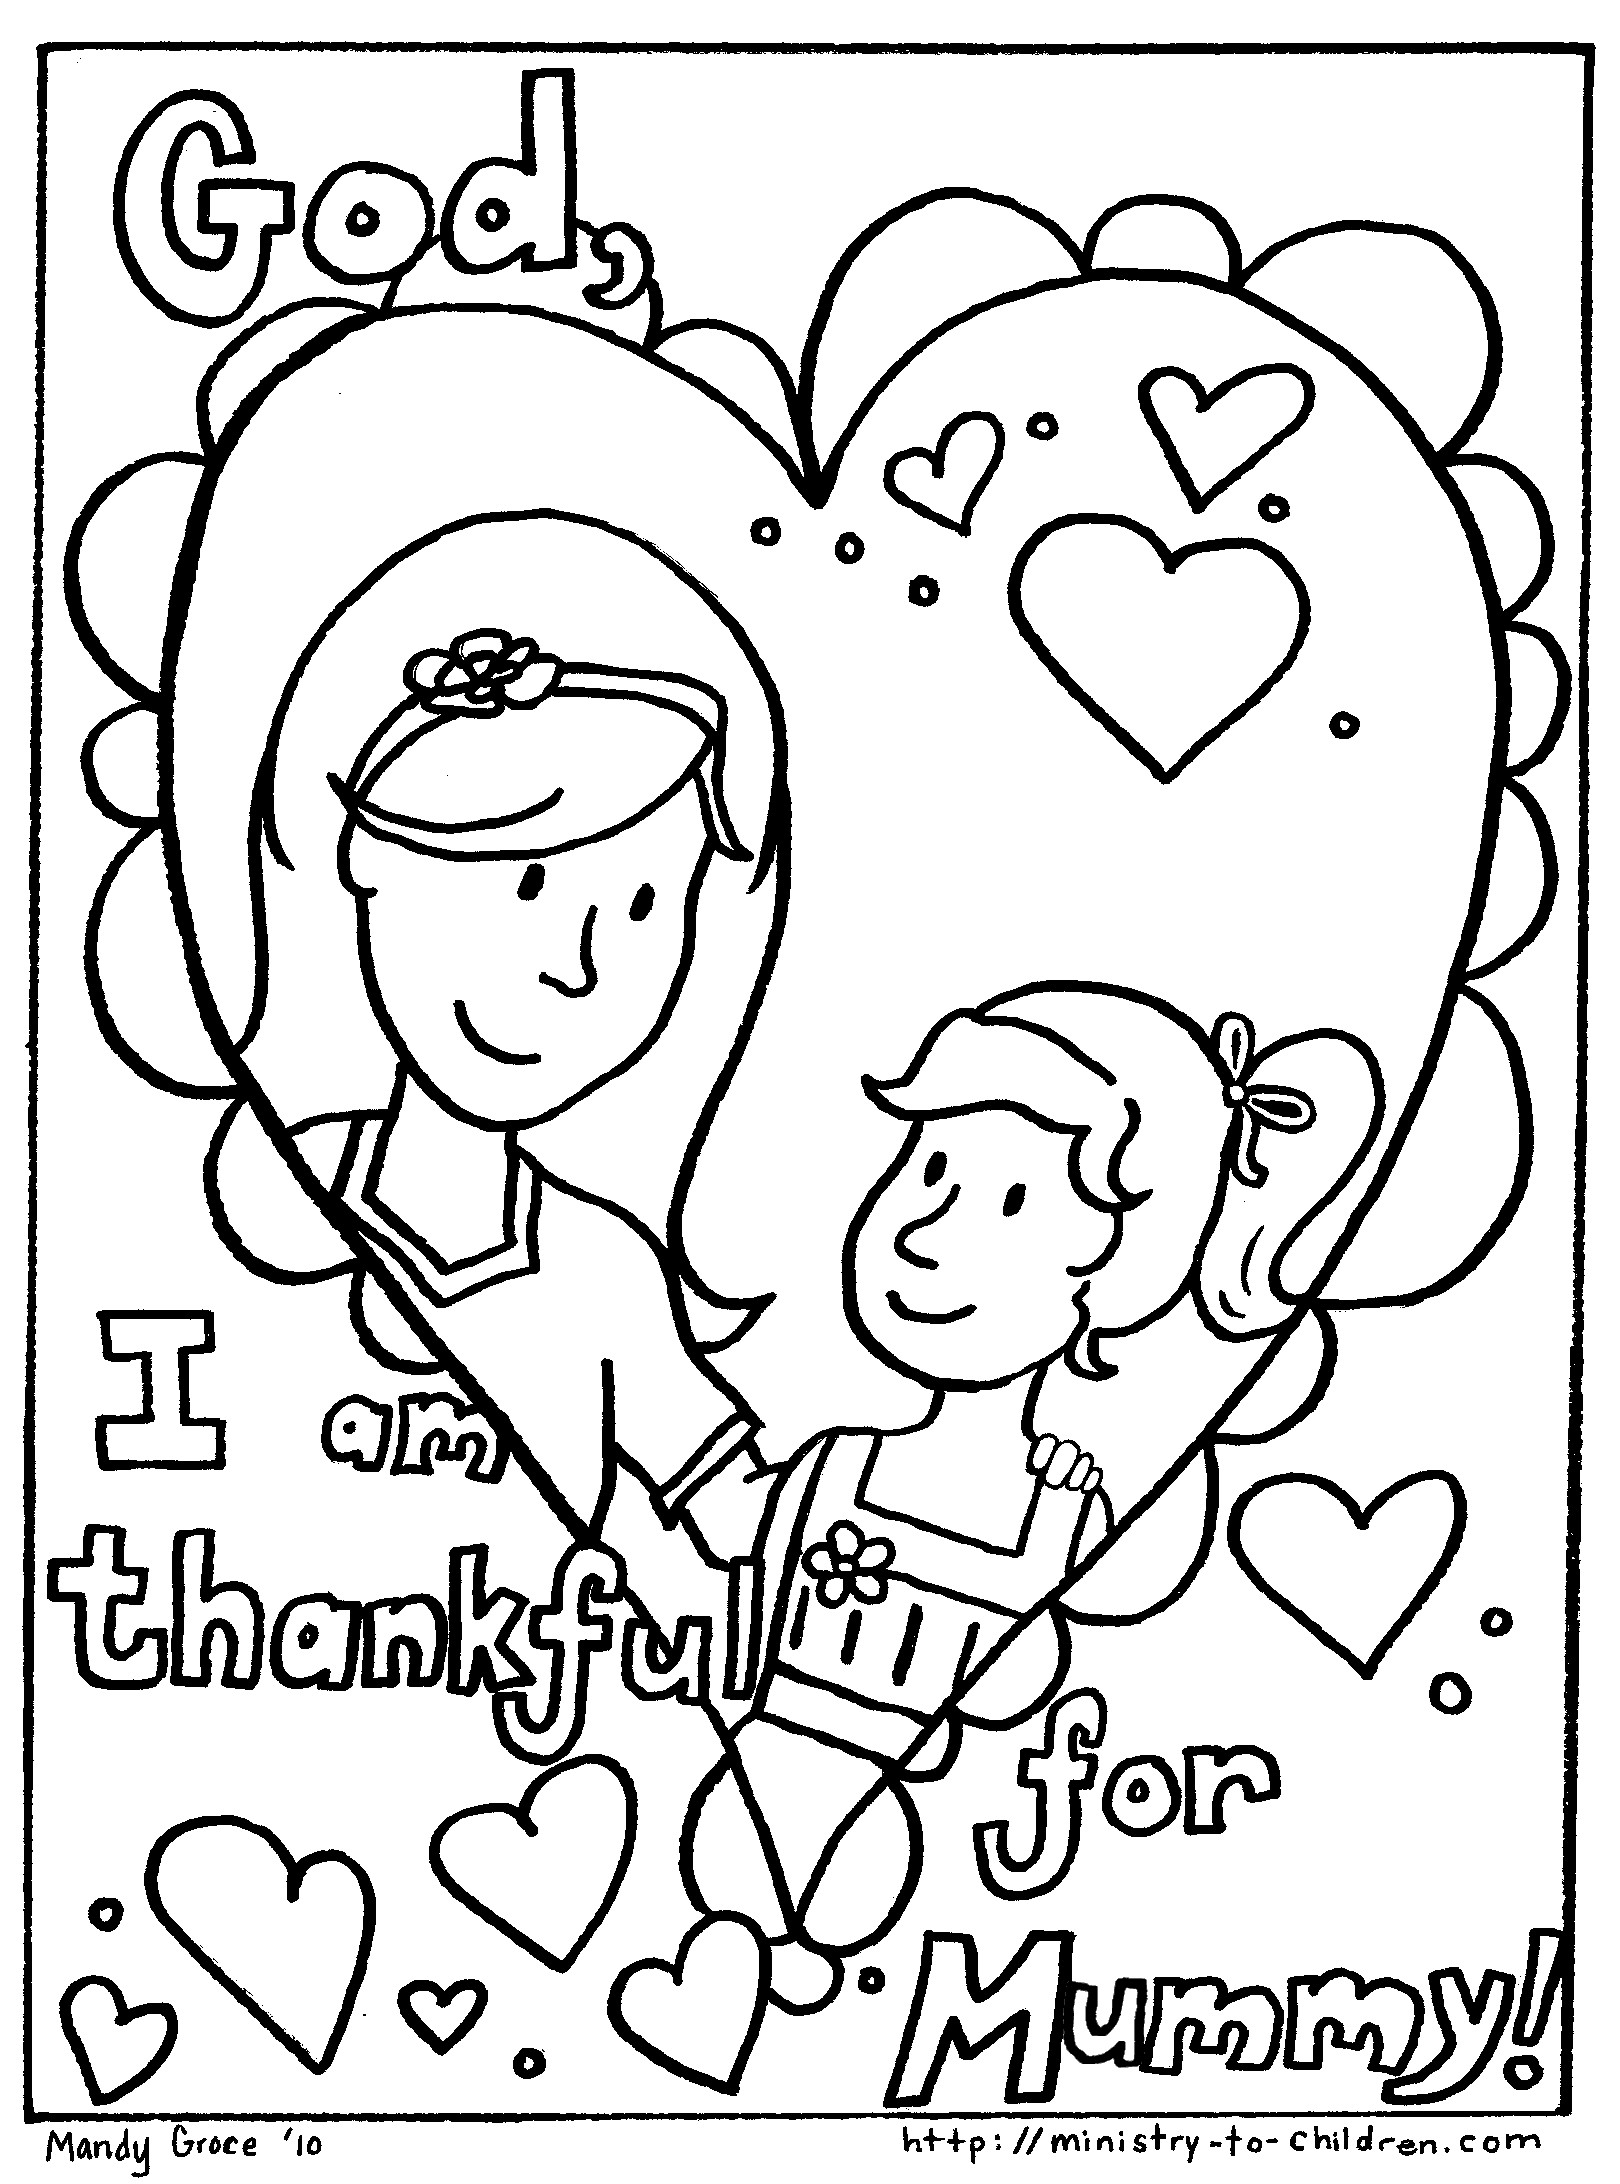 mom birthday coloring pages - photo#29